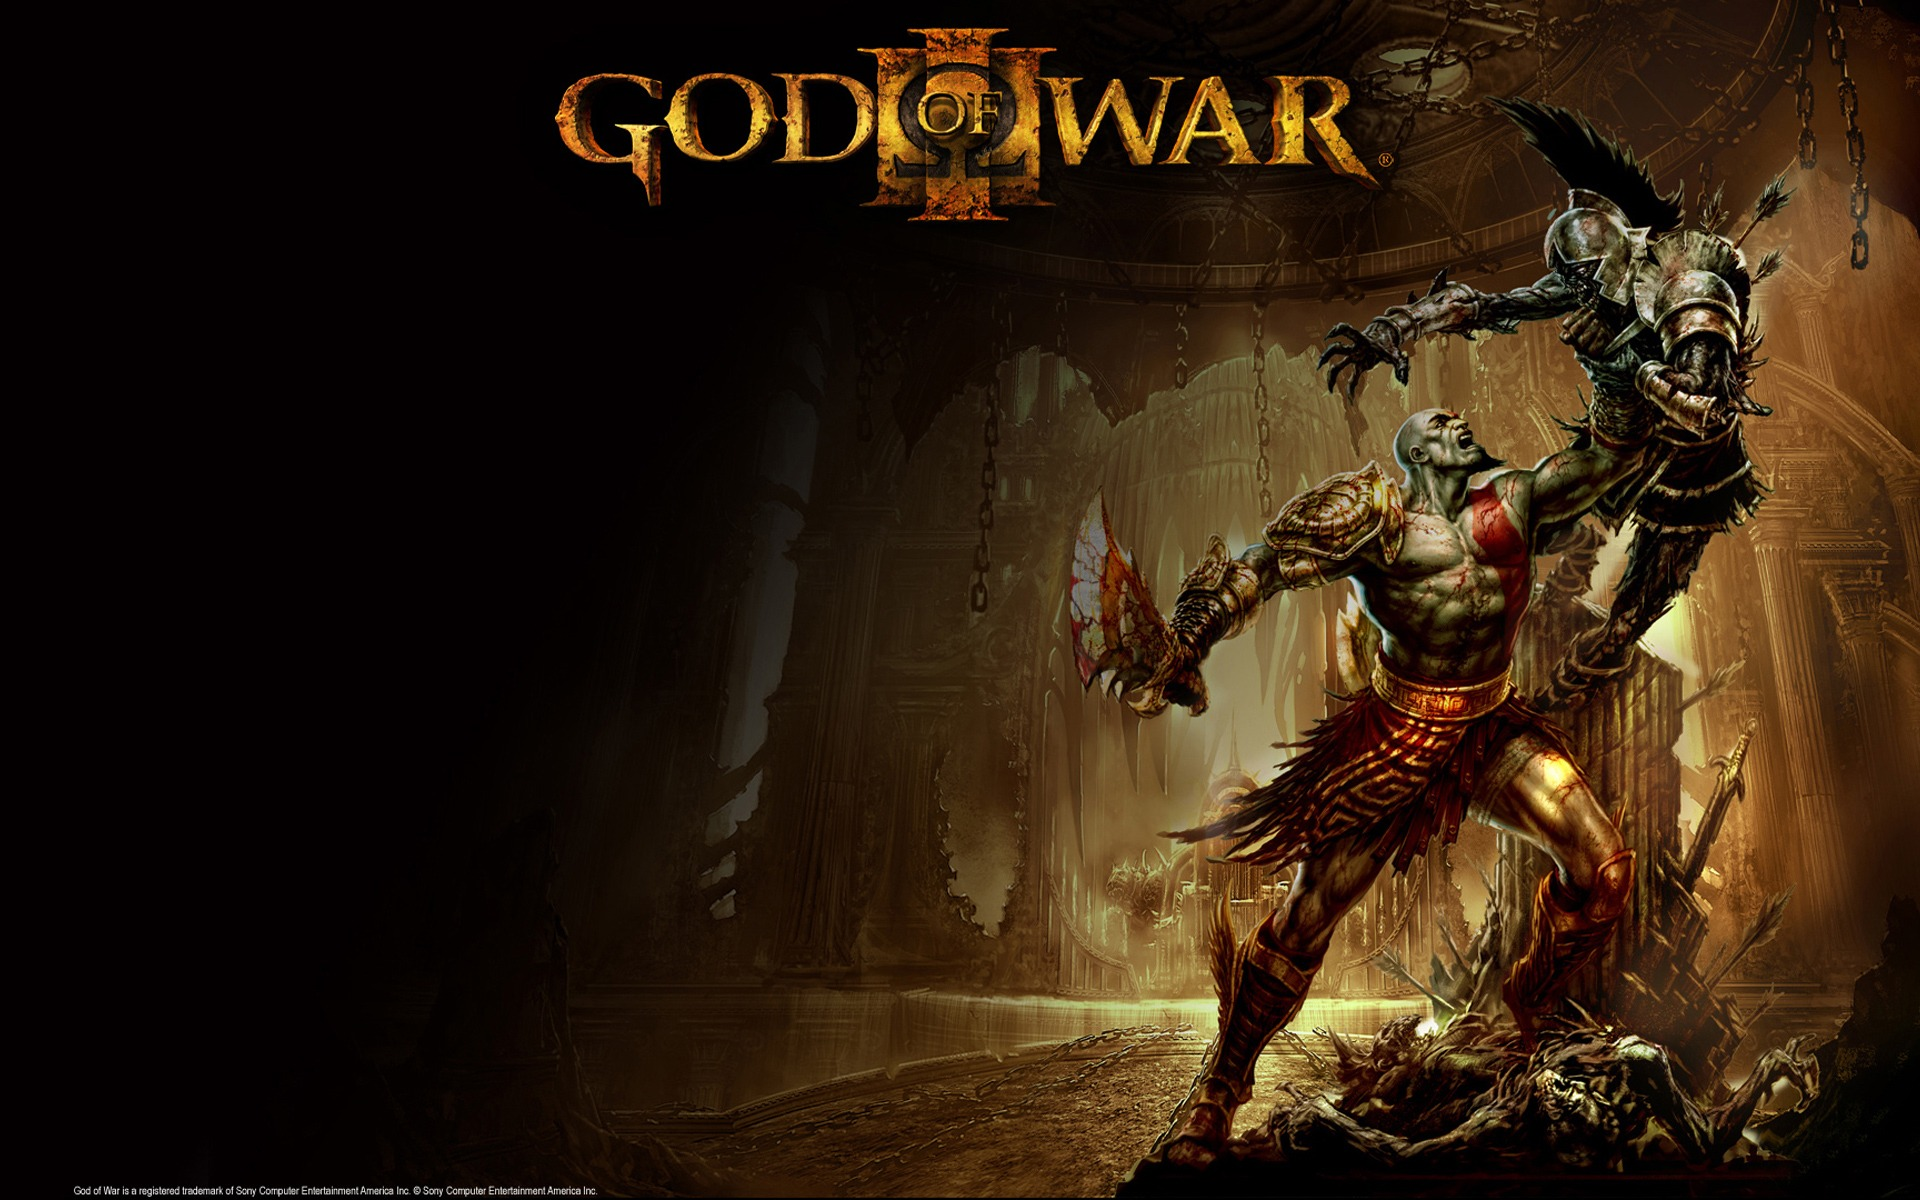 god of war 3 wallpaper god of war games wallpapers in jpg format for